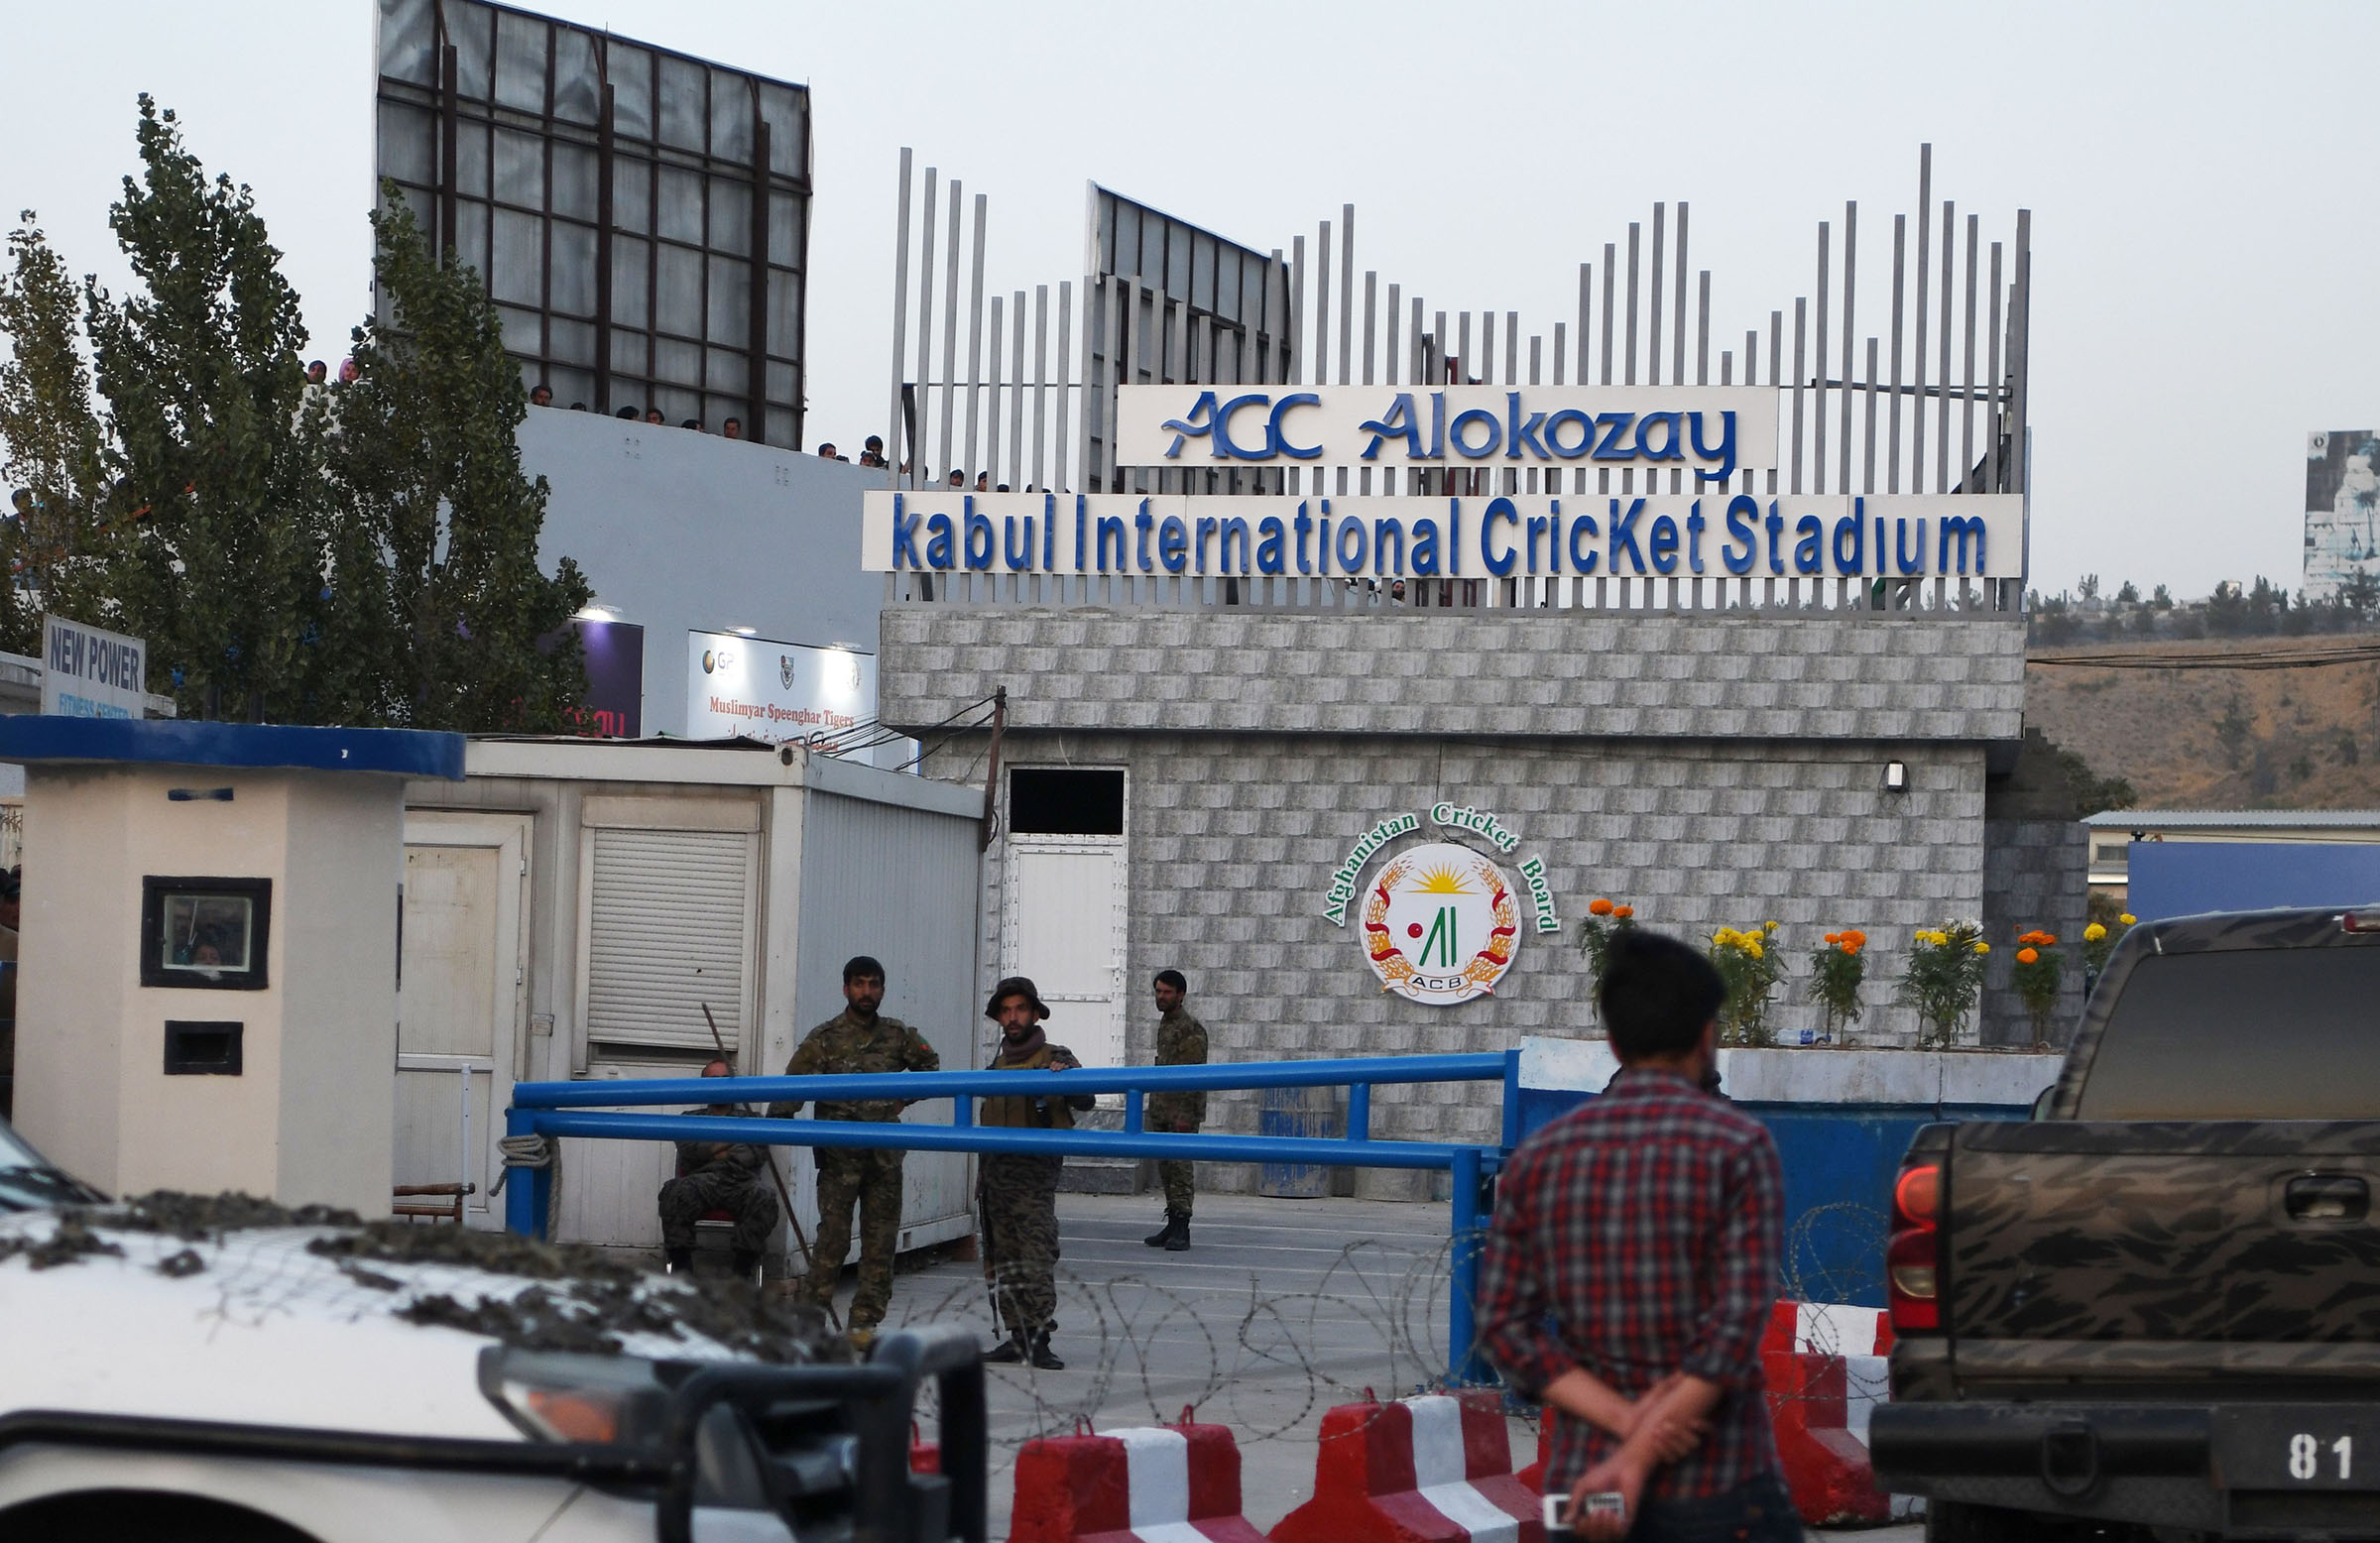 Security outside the Kabul Stadium following the bomb blast in September 2017 // Getty